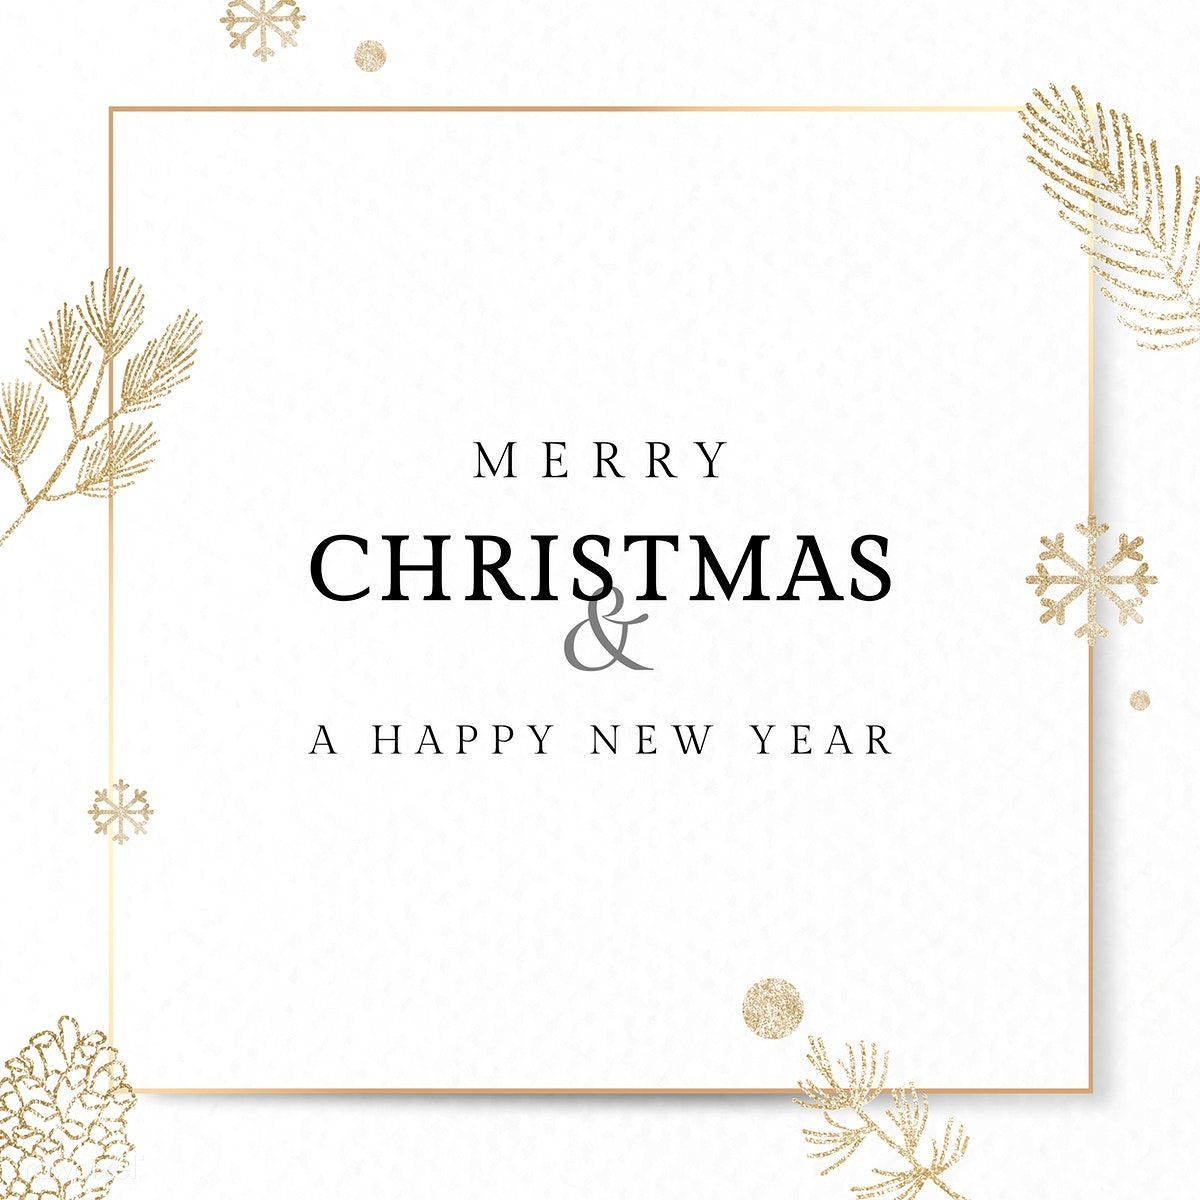 Download Premium Vector Of Christmas Gold Frame Social Ads Template Vector Merry Christmas Card Greetings Christmas Card Template Gold Christmas